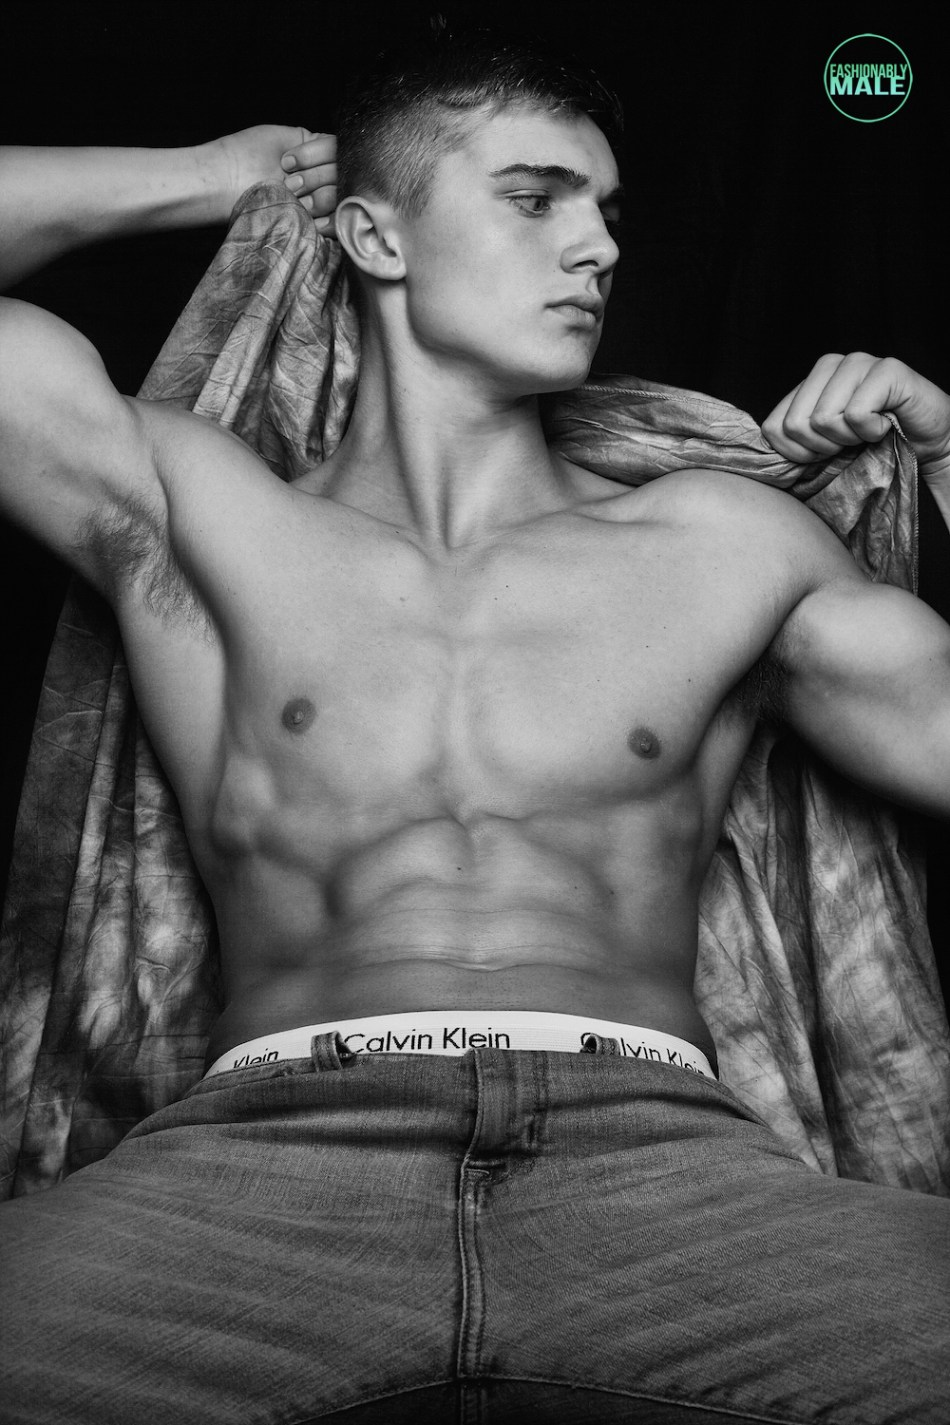 Freddie Pearson by José Pope for Fashionably Male3